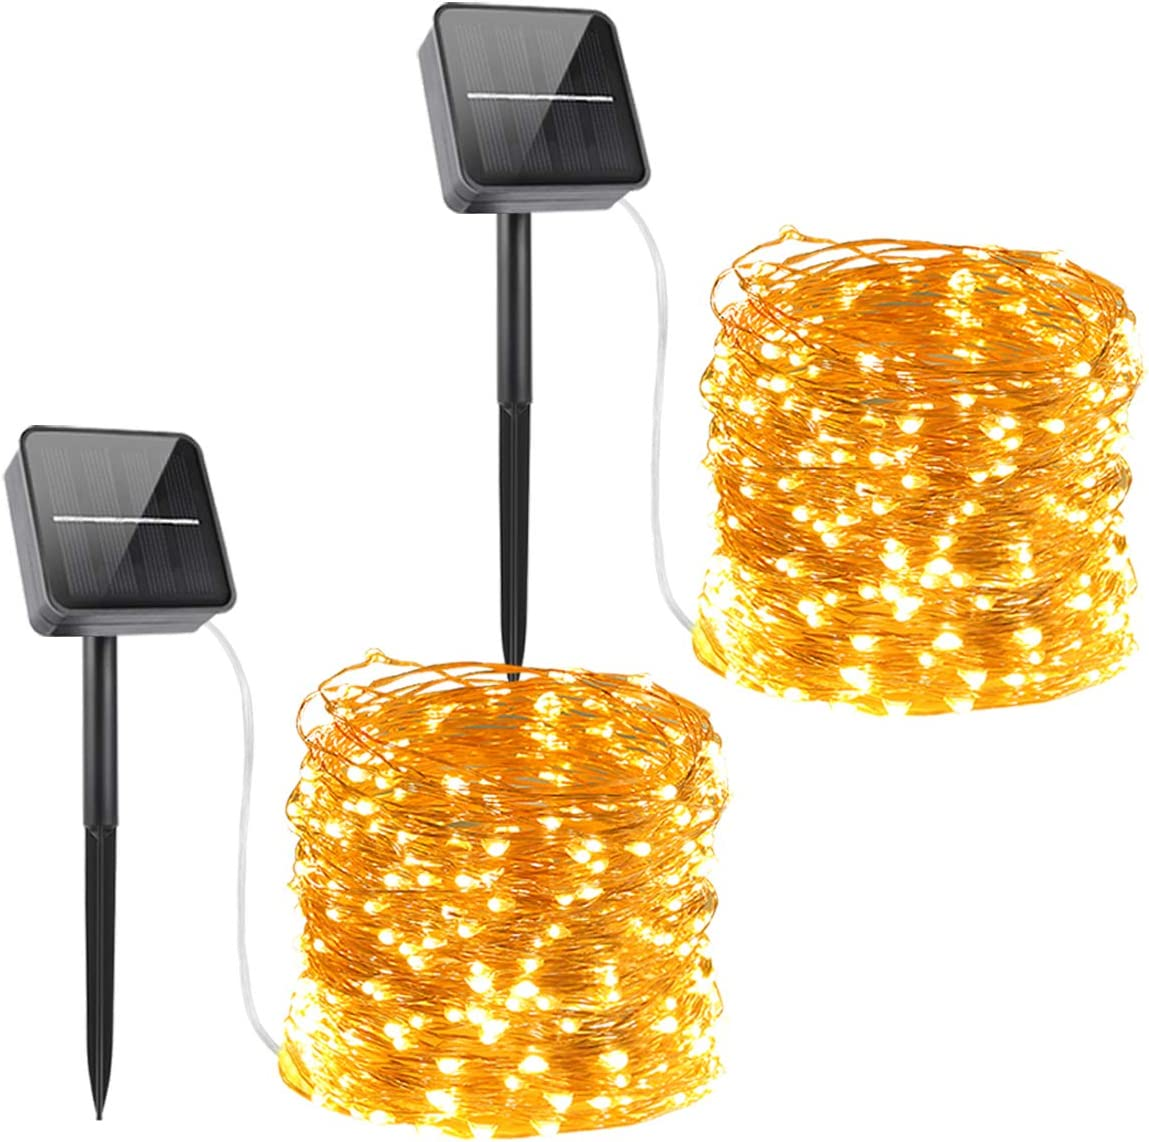 Solar Powered String Lights,Solar Fairy Lights,10 Meters/ 33Ft 100LEDS / 8 Modes,Waterproof Copper Wire Lighting for Indoor,Outdoor,Wedding,Patio,Home,Garden Decoration[2 Pack]Warm White (Warm White): Home & Kitchen